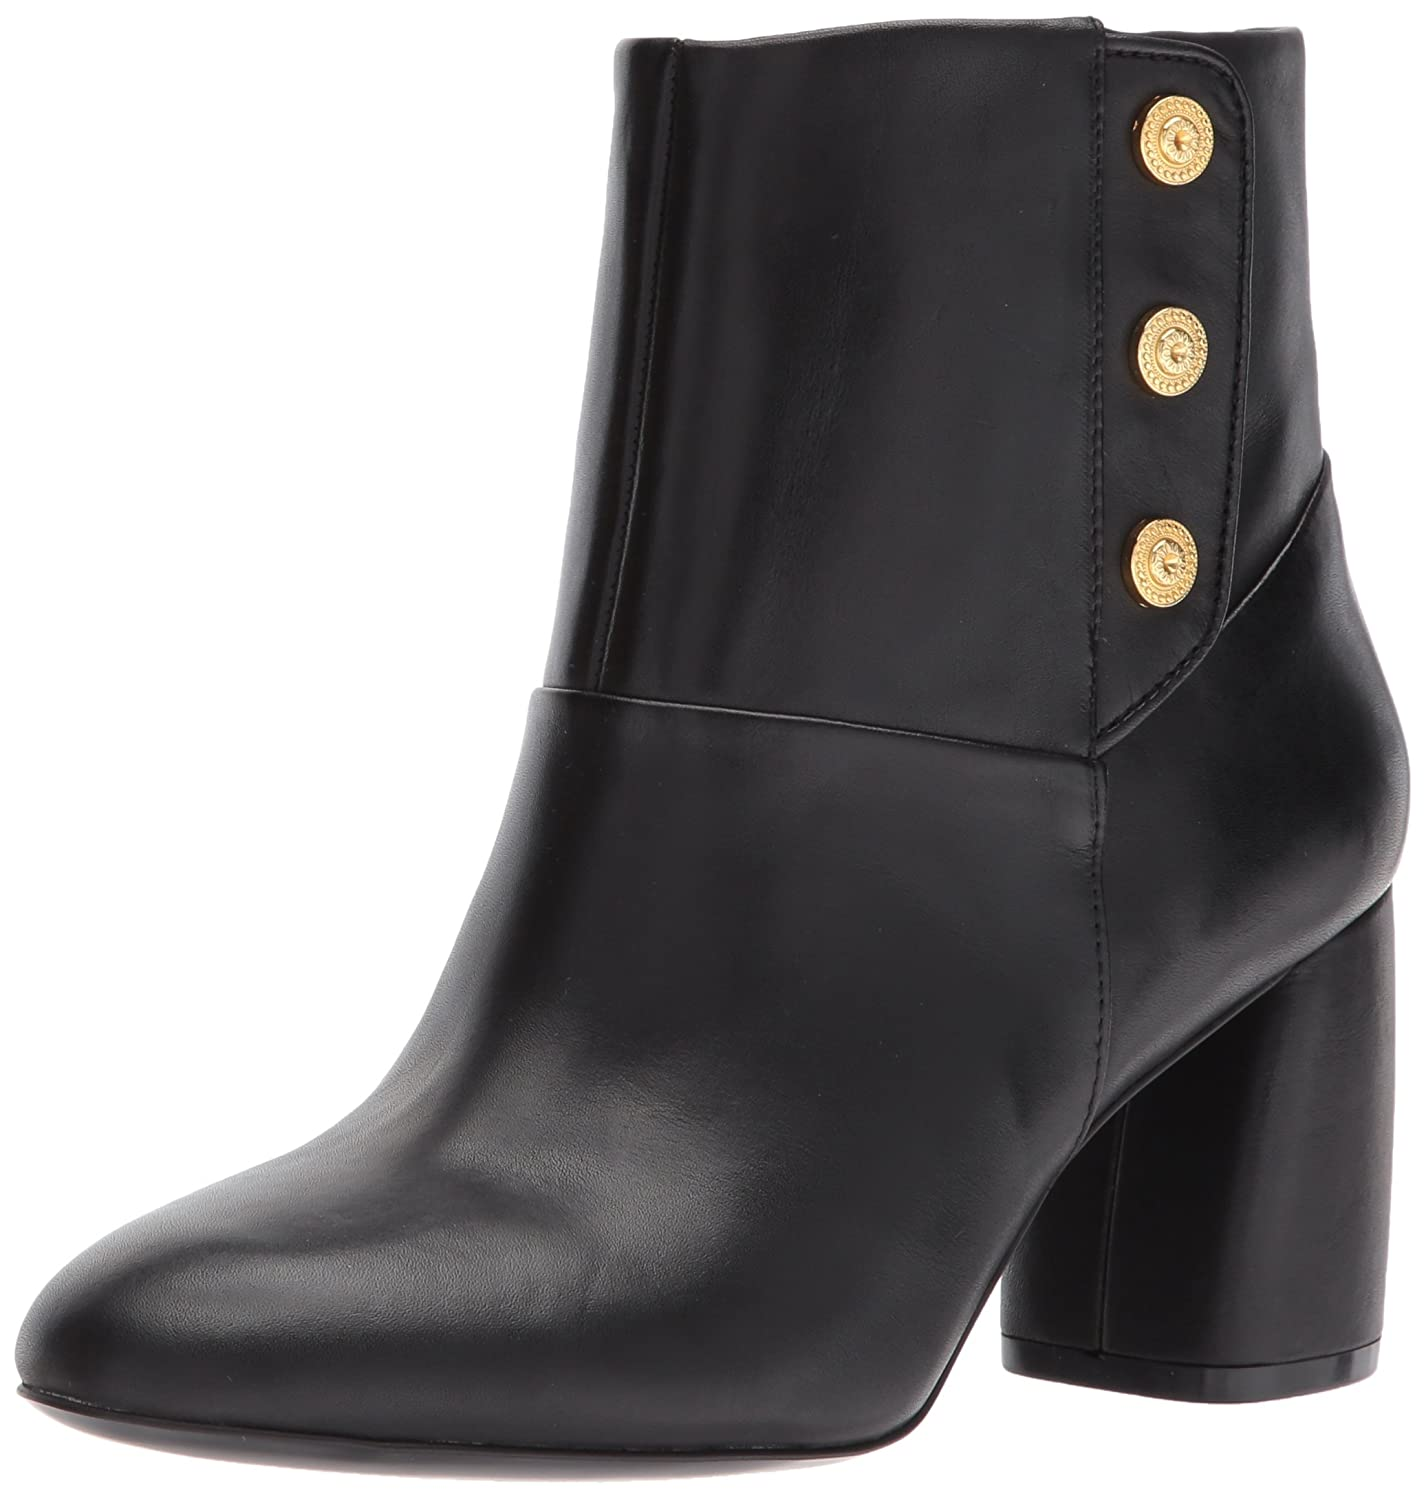 Nine West Women's Kirtley Leather Ankle Boot B01N19KWU2 8 B(M) US|Black